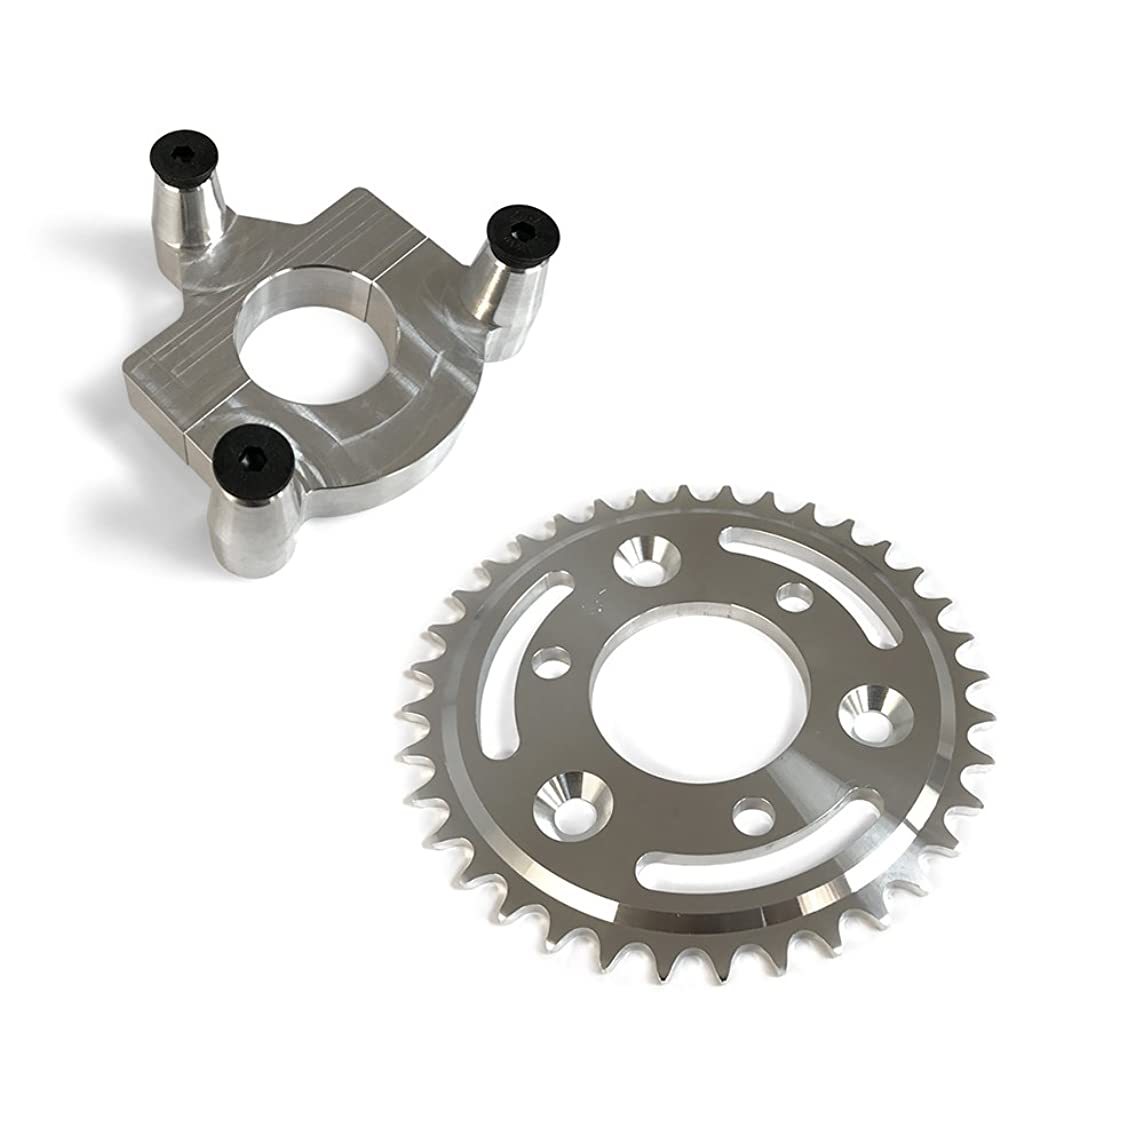 36 Tooth CNC Sprocket With Rear Wheel Hub Adapter